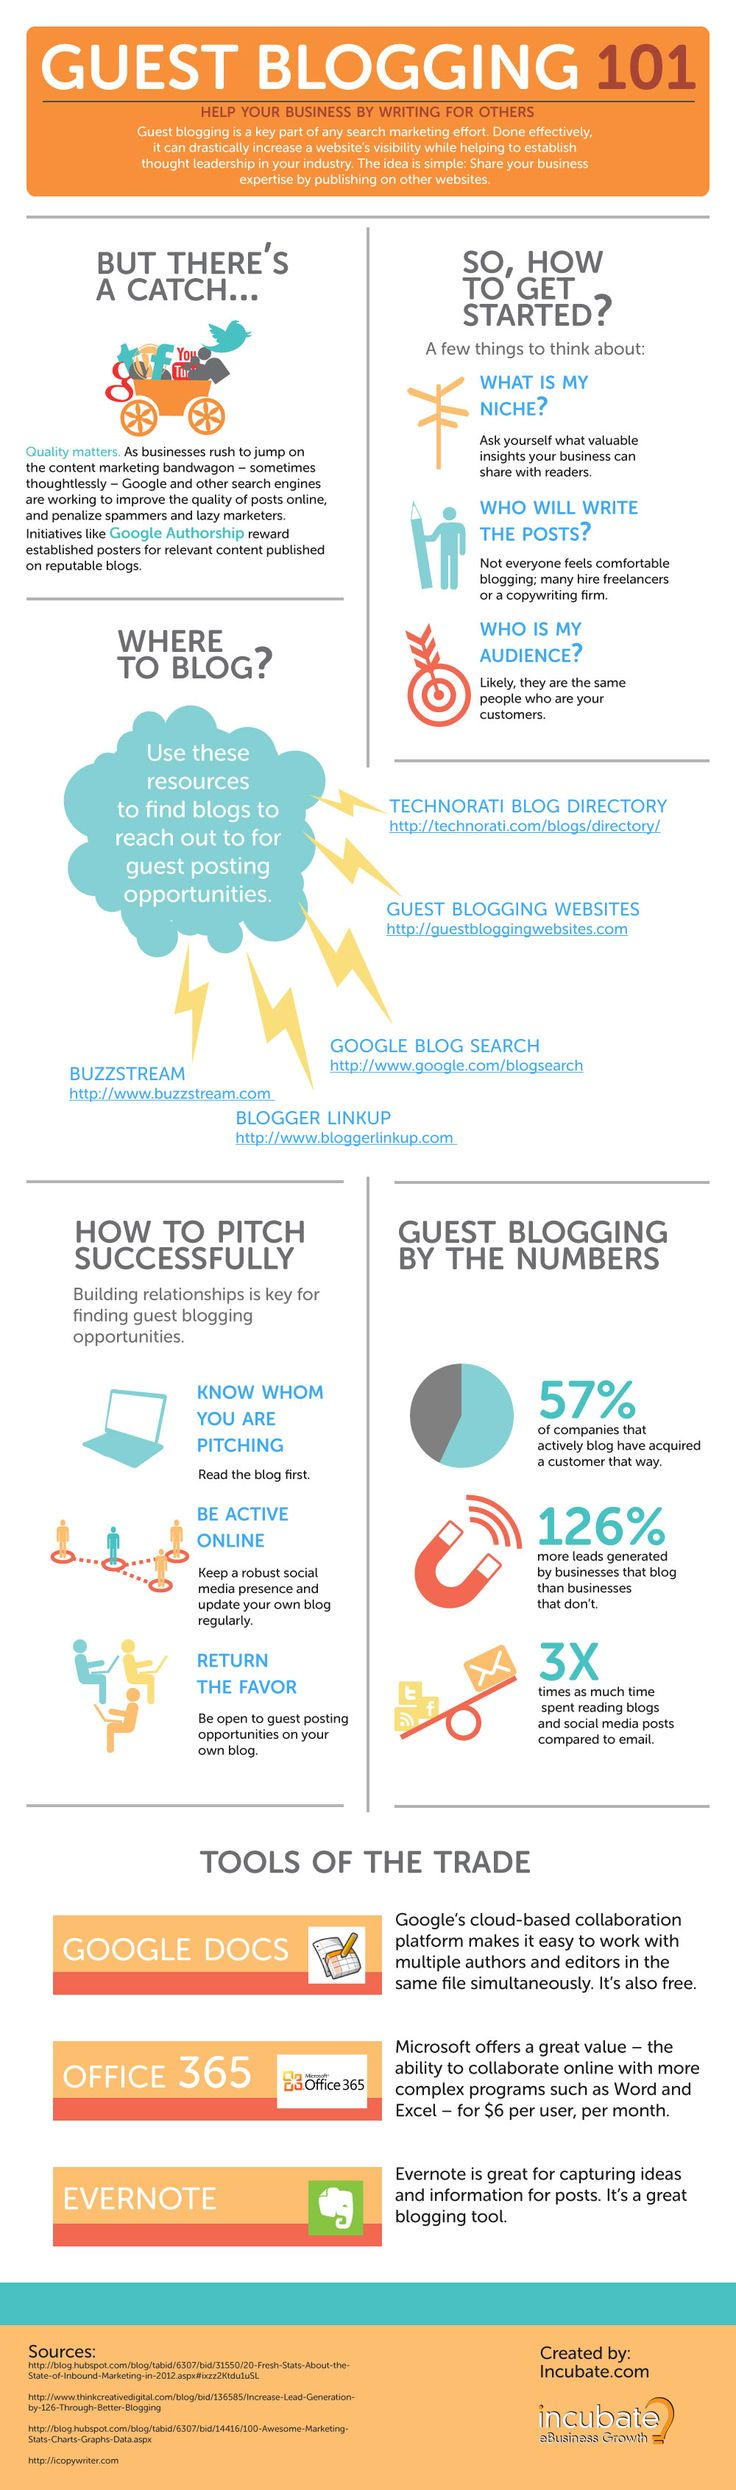 GUEST BLOGGING 101 [INFOGRAPHIC] #BLOGGING #SOCIALMEDIA #INFOGRAPHIC